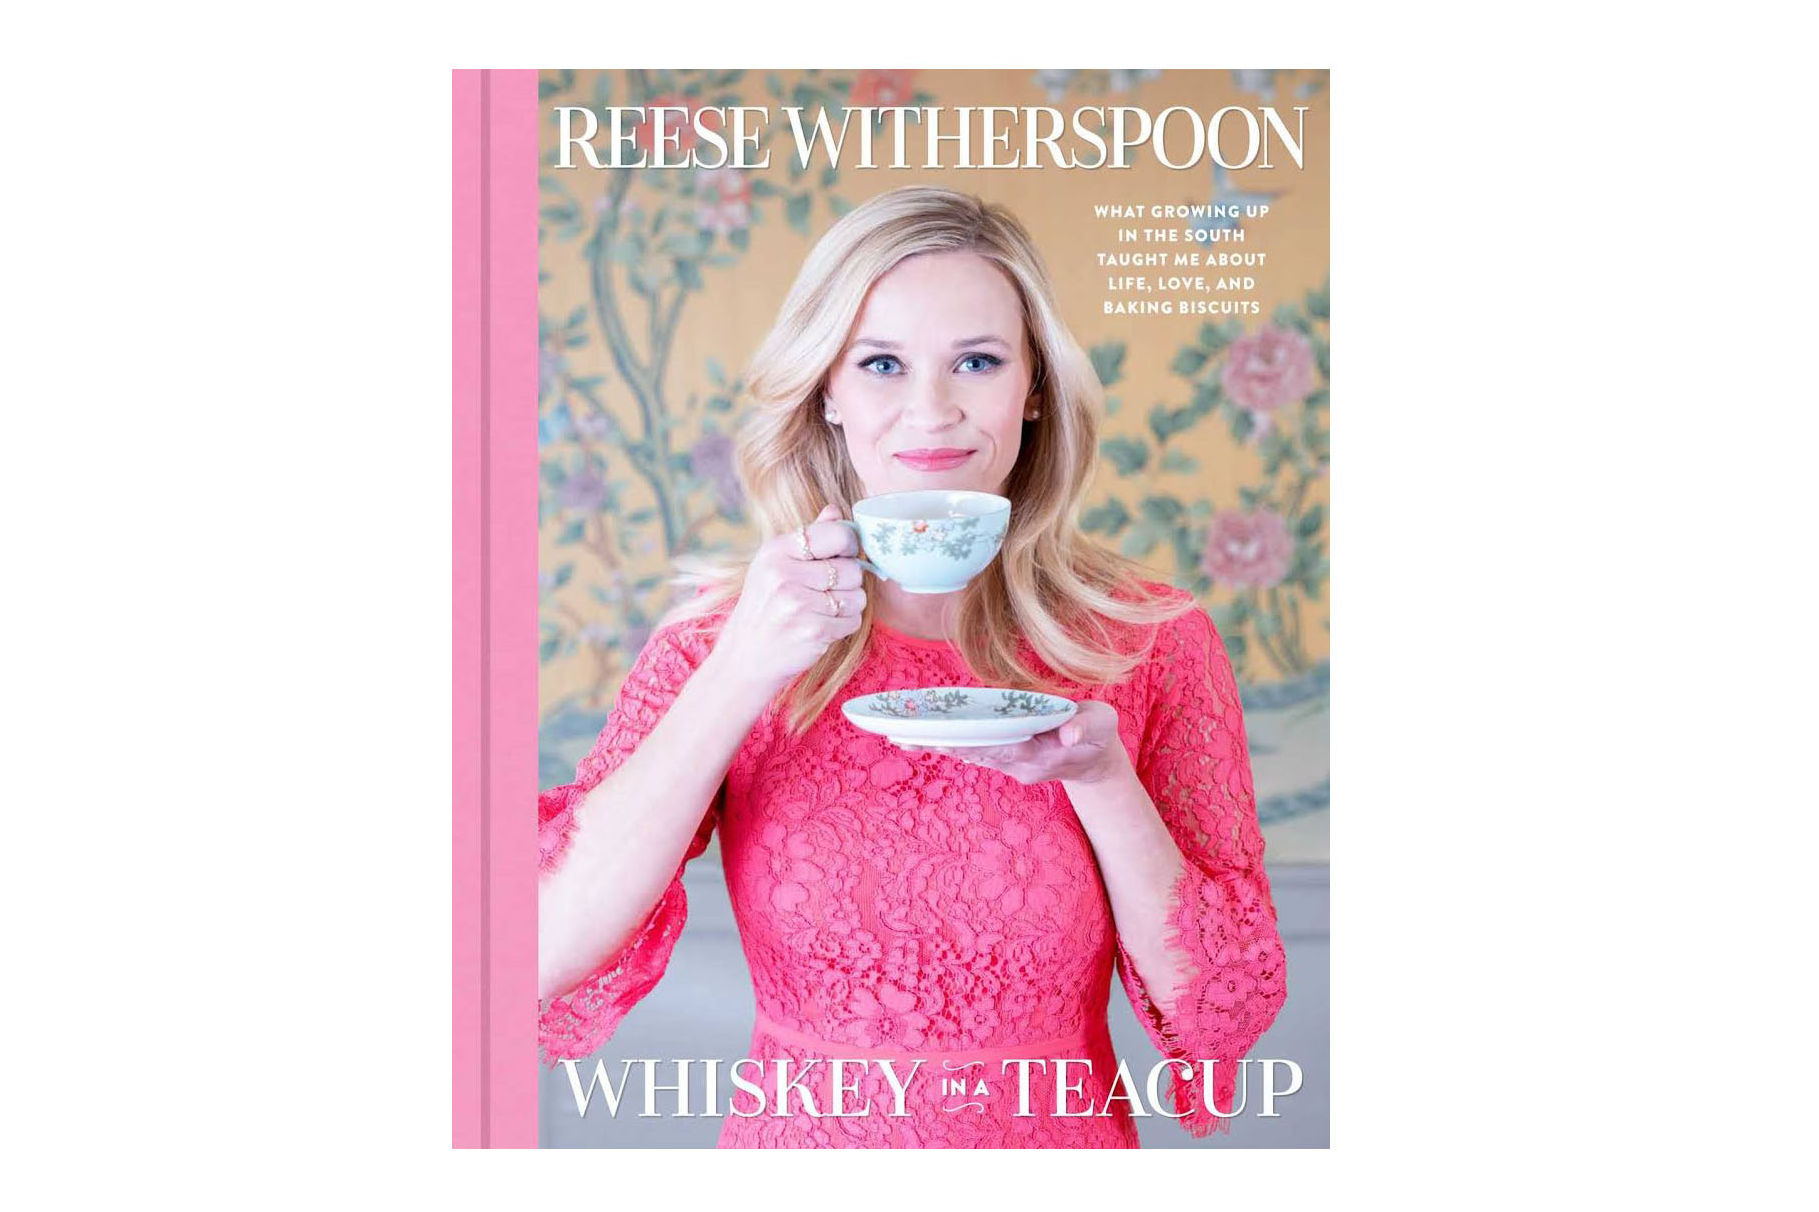 You're Going to Love Reese Witherspoon's New Book